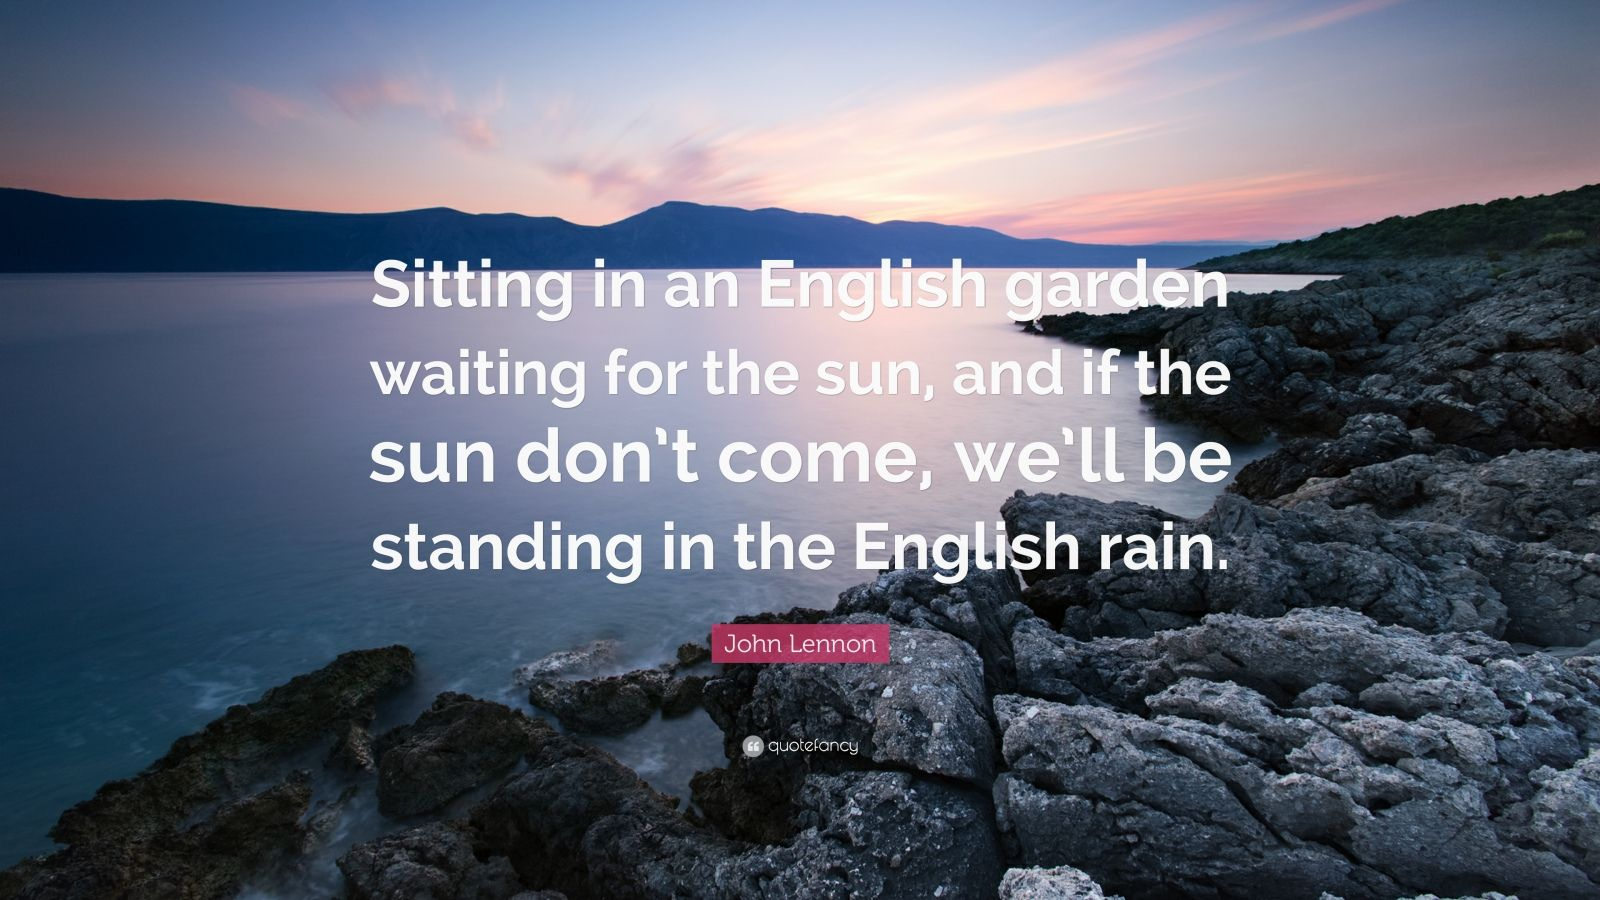 """John Lennon Quote: """"Sitting in an English garden waiting for the sun, and if the sun don't come, we'll be standing in the English rain."""""""